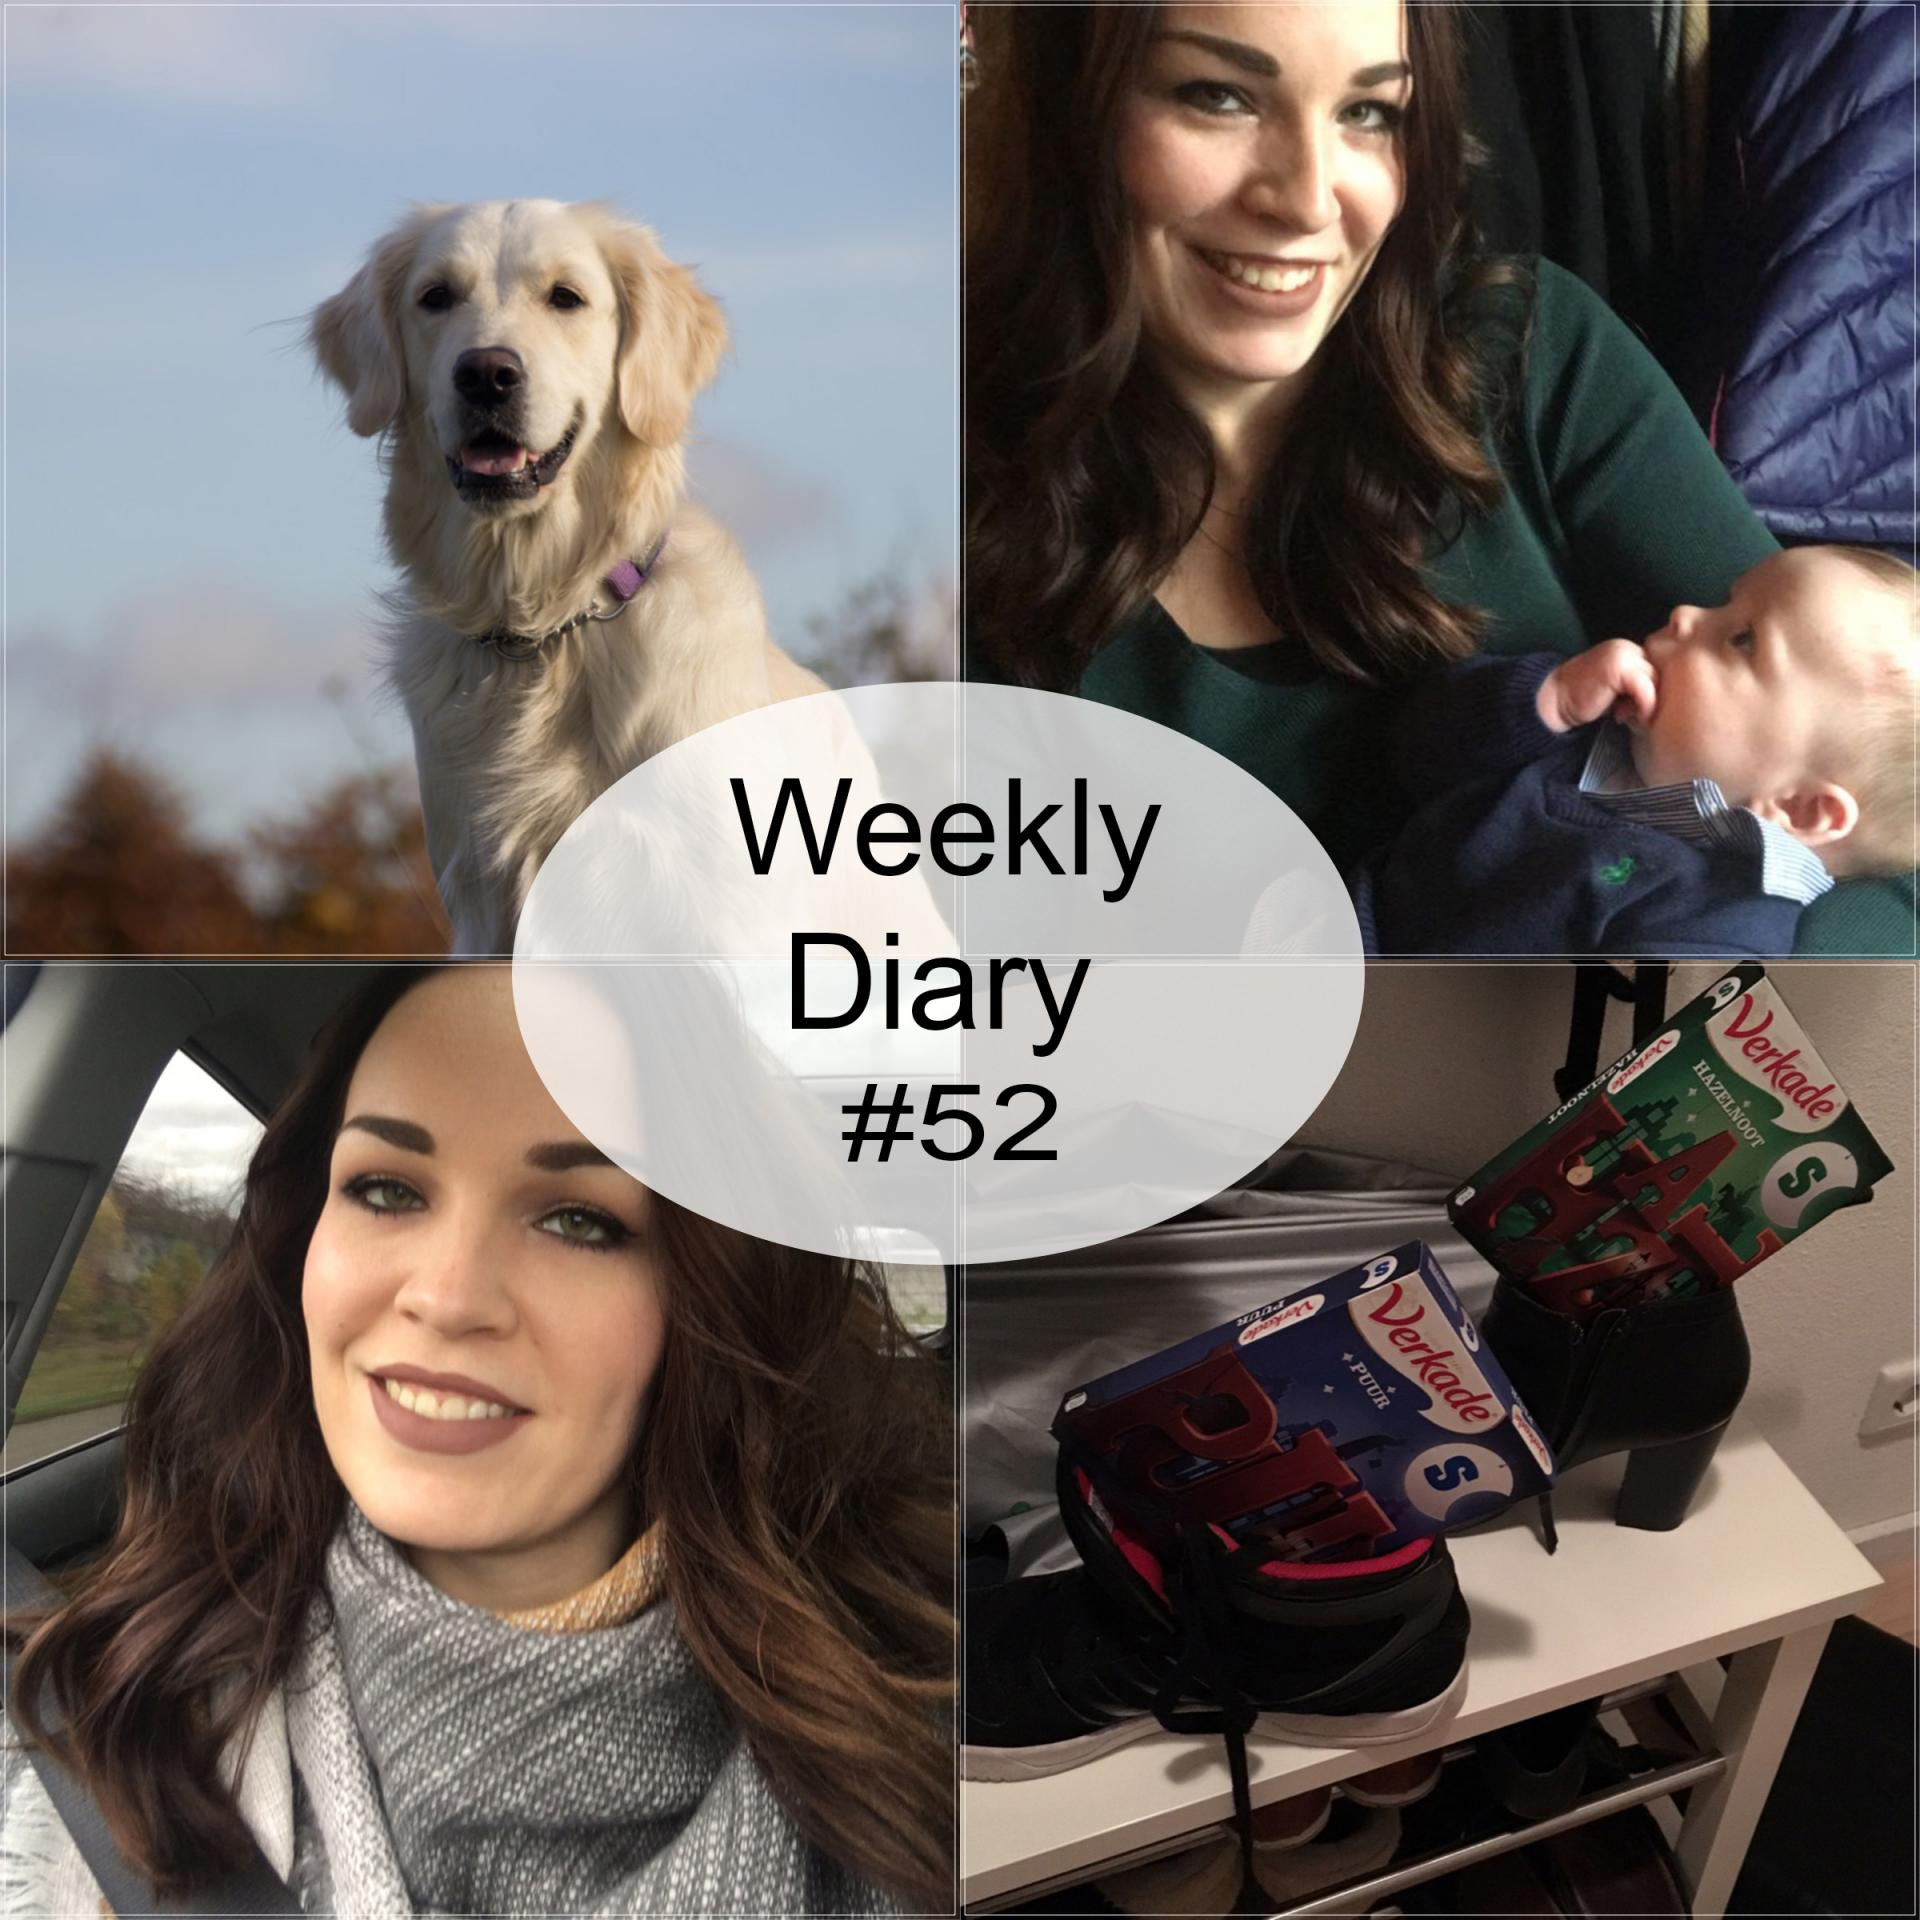 Weekly Diary #52